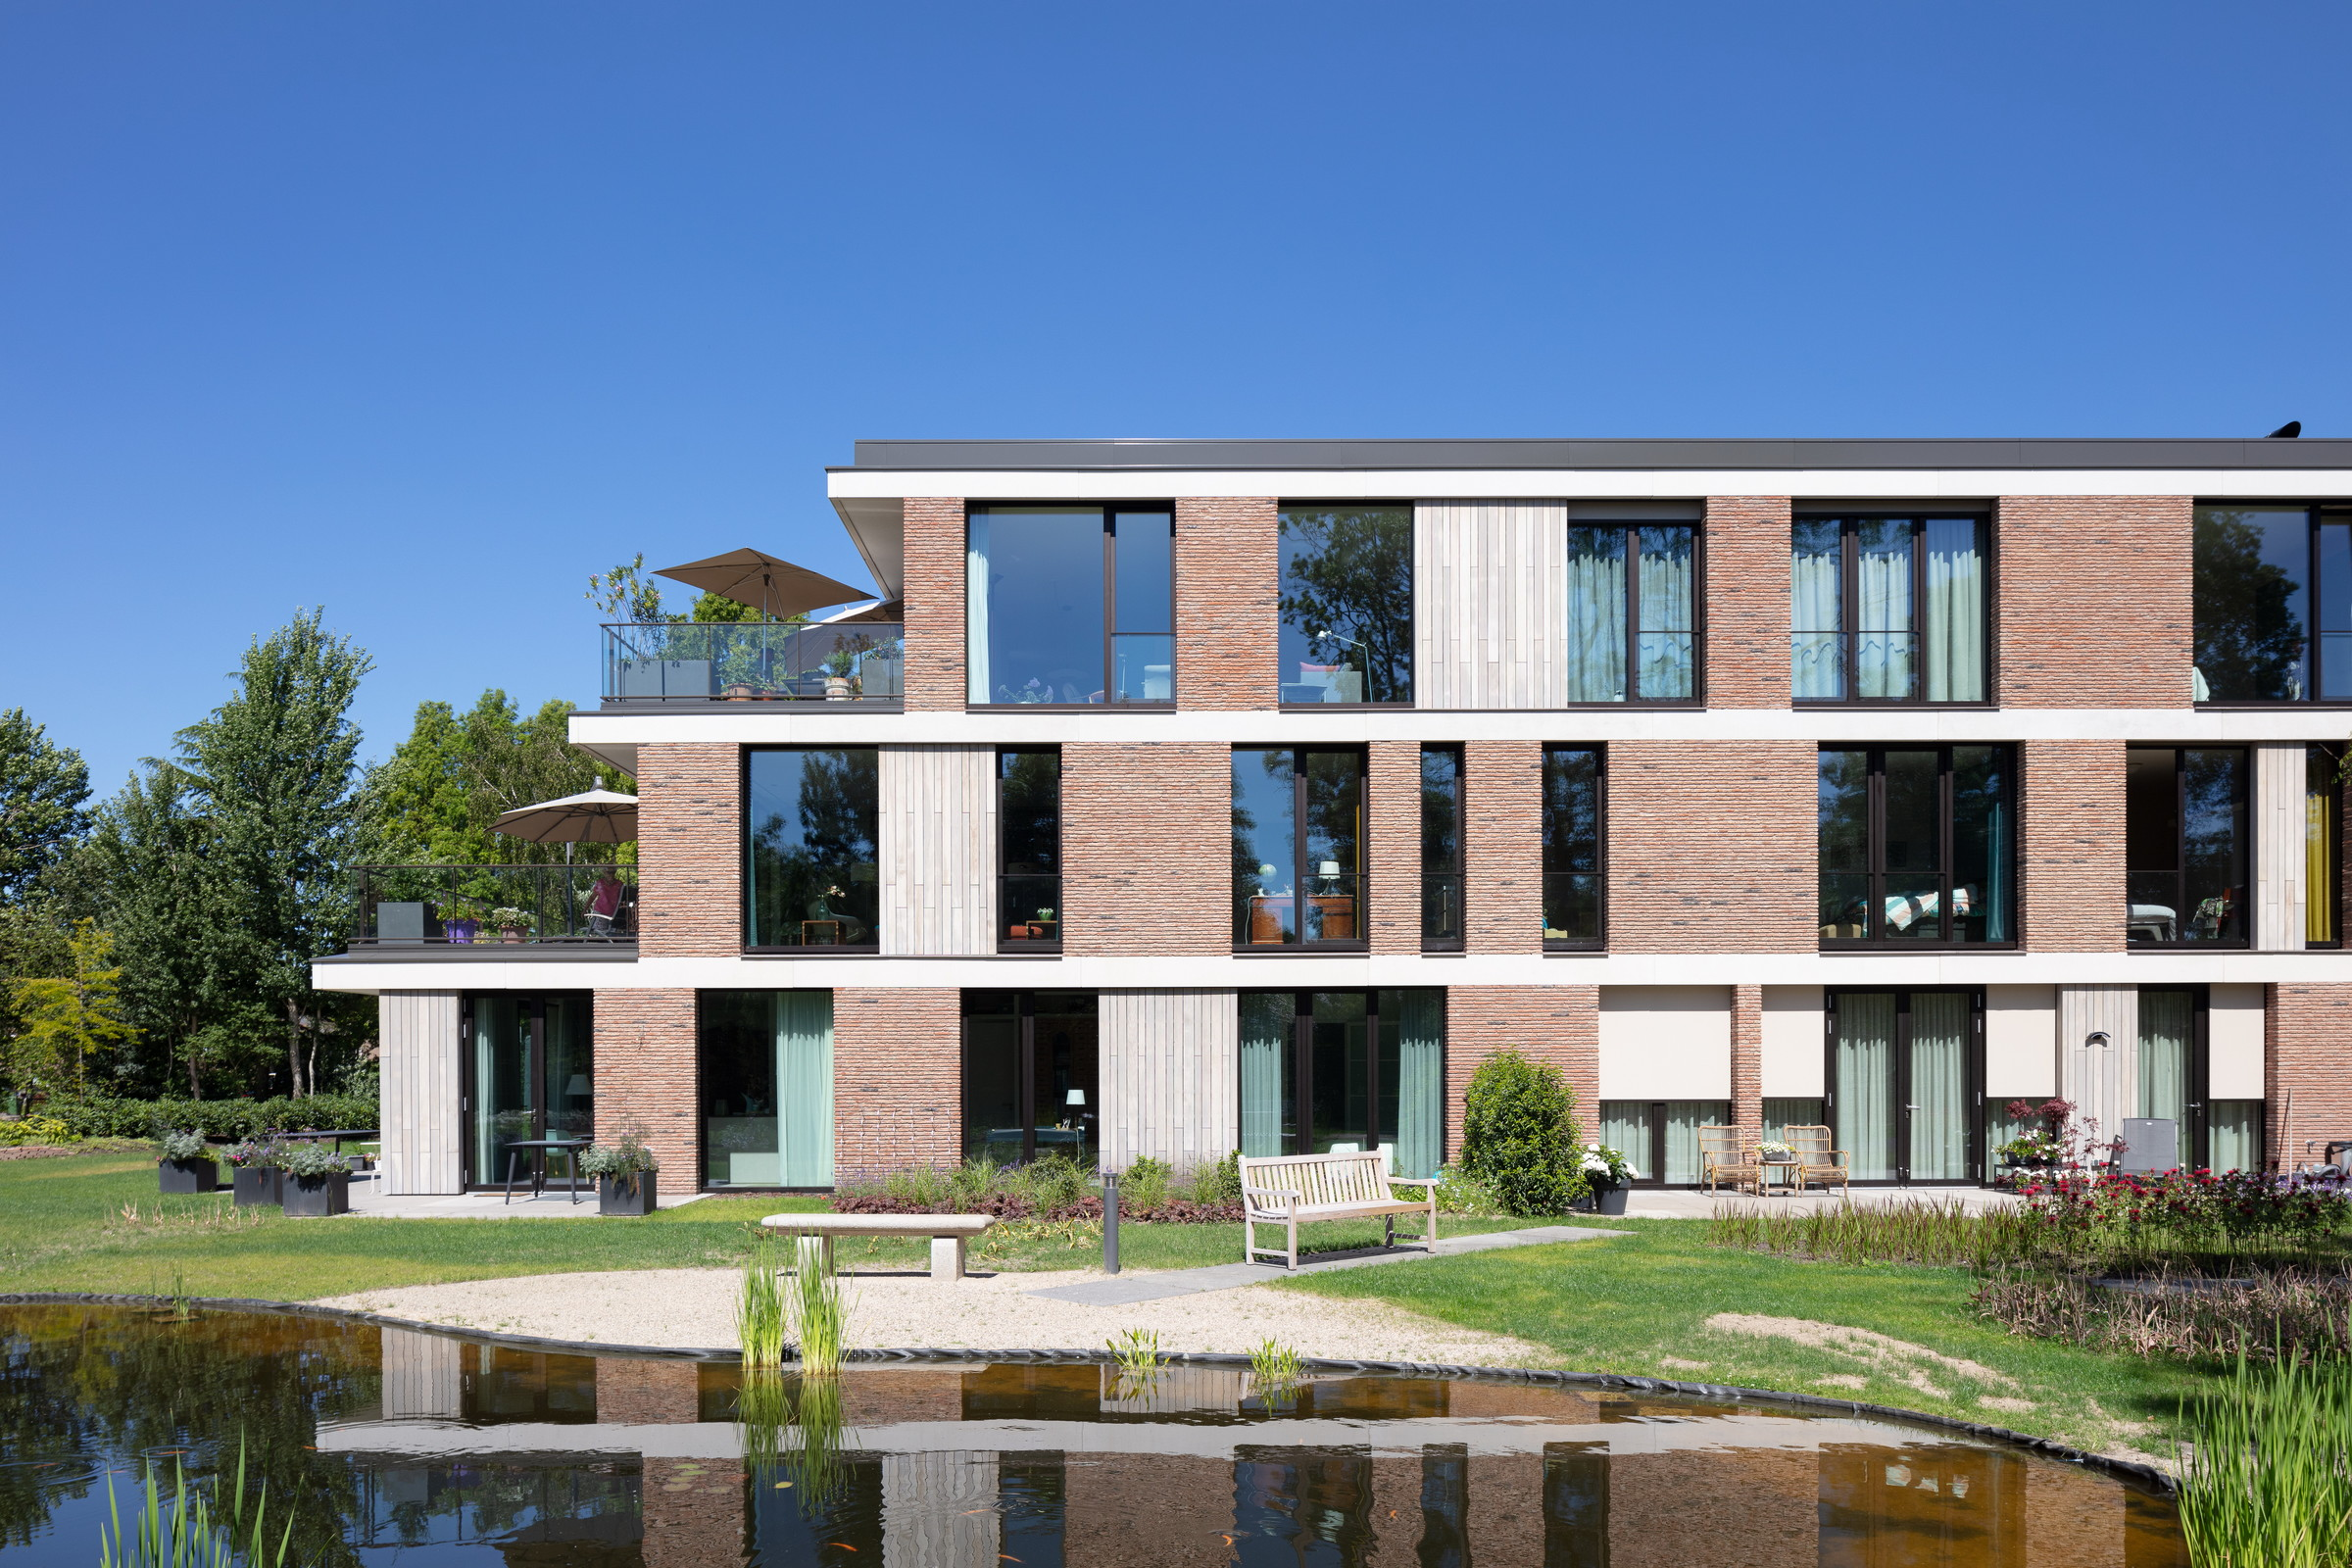 27-Zecc_Architecten-Surplus-Zeist-Apartment_buildin.JPG